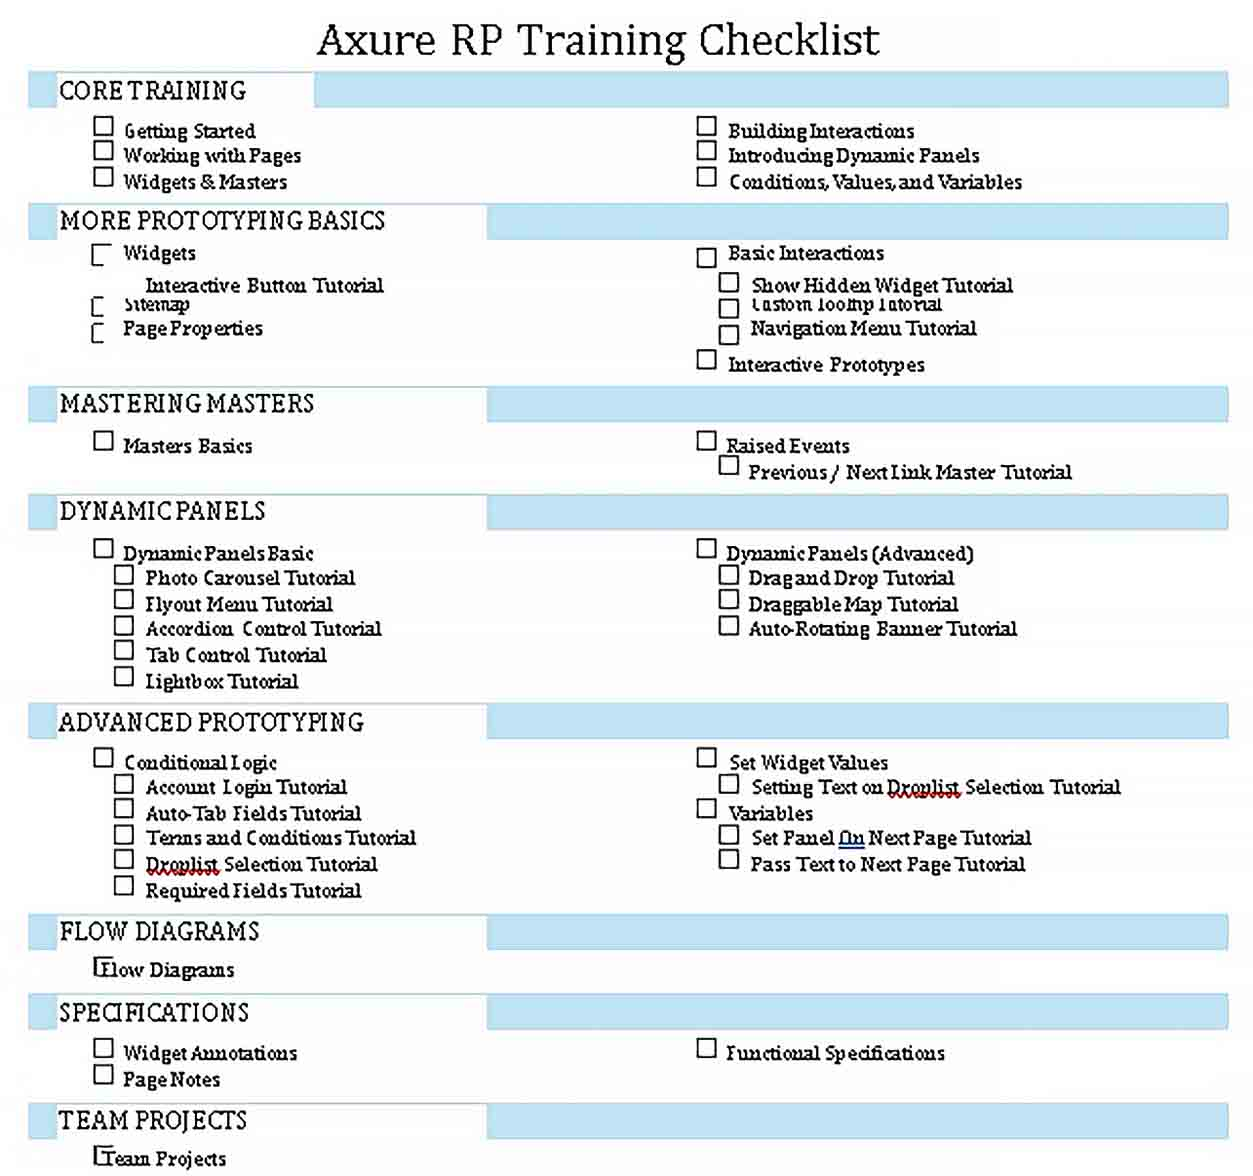 Template Axure Training Checklist Free PDF Format Template Dowload